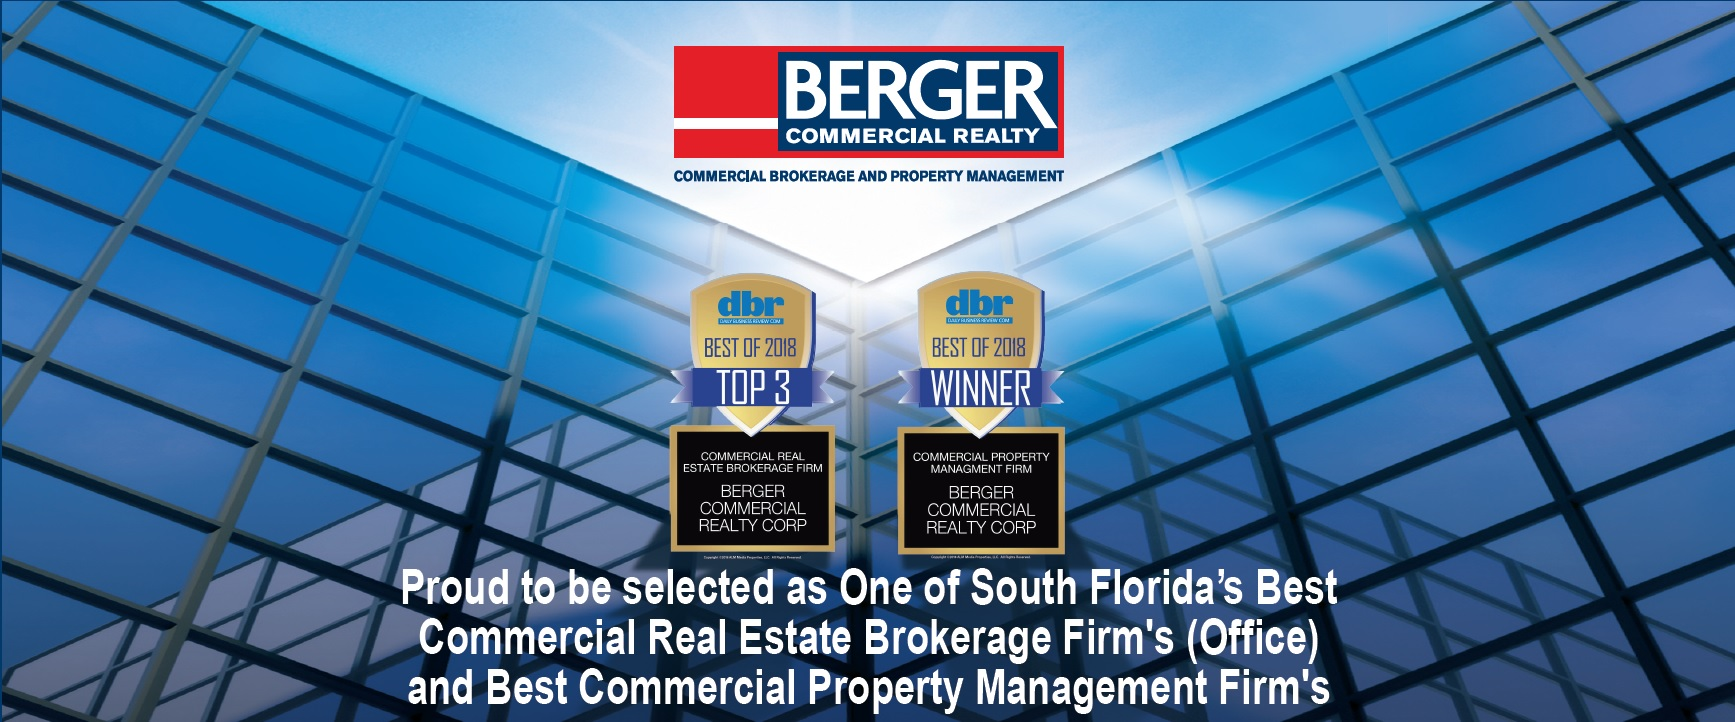 Thanks For Voting! Berger Commercial Realty Is #1 In The Daily Business Review